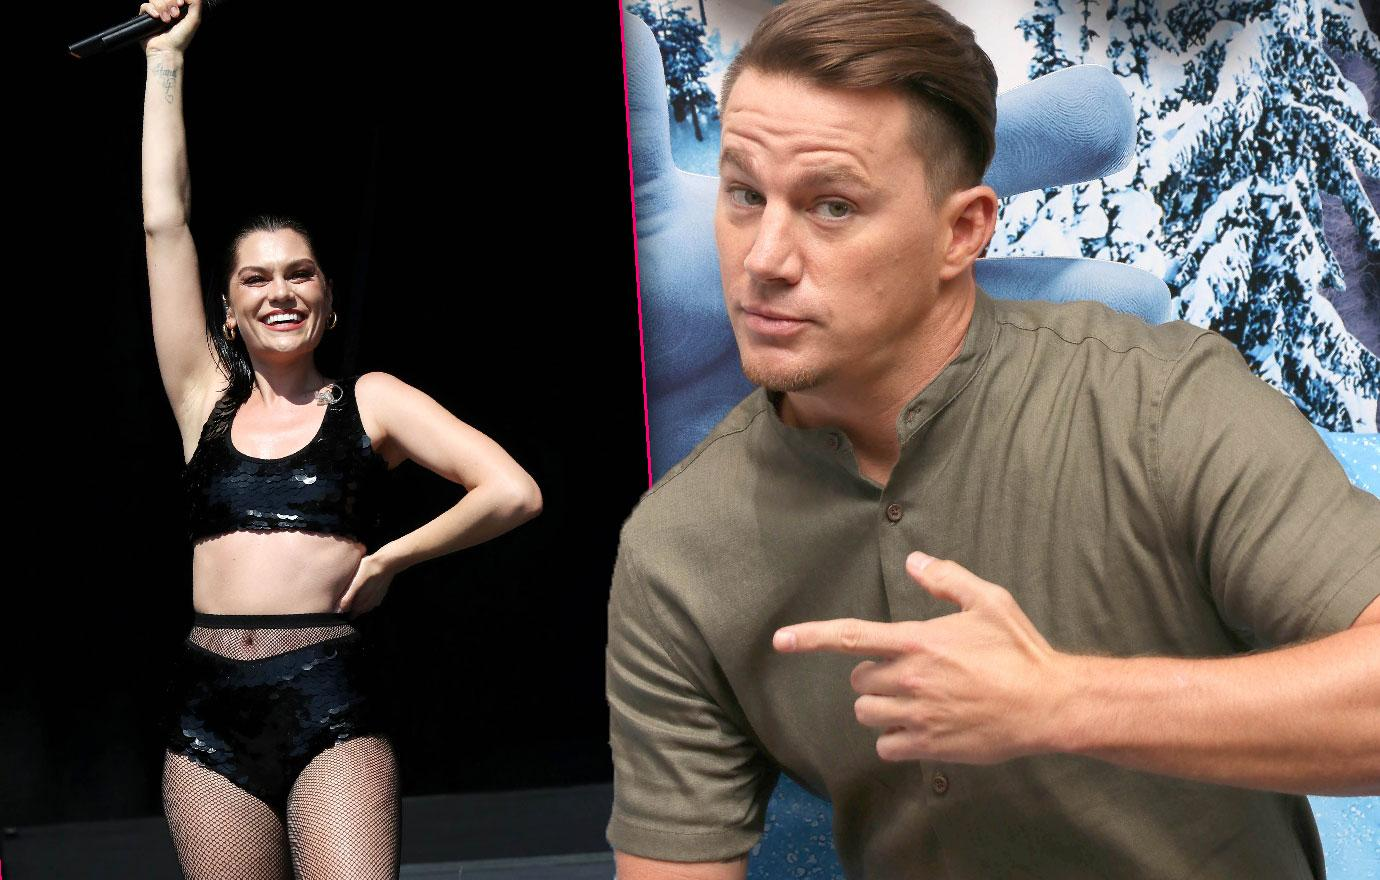 Controversy Erupts Over Channing Tatum Taking Daughter To Galpal Jessie J Concert